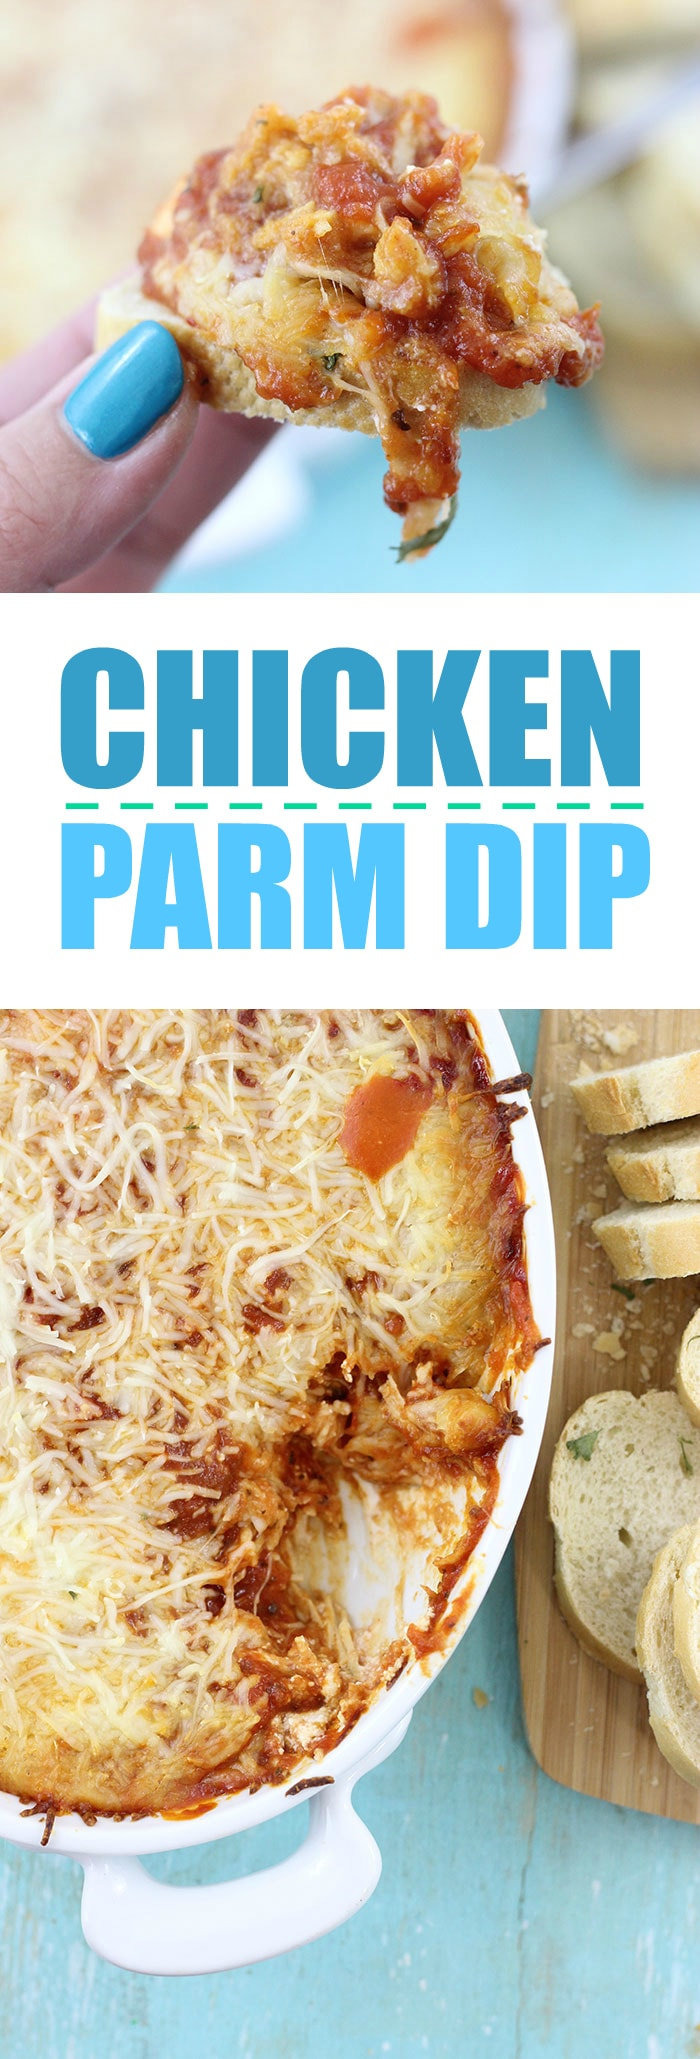 Chicken Parmesan Dip. Click the image to get this cheesy amazingness right now.